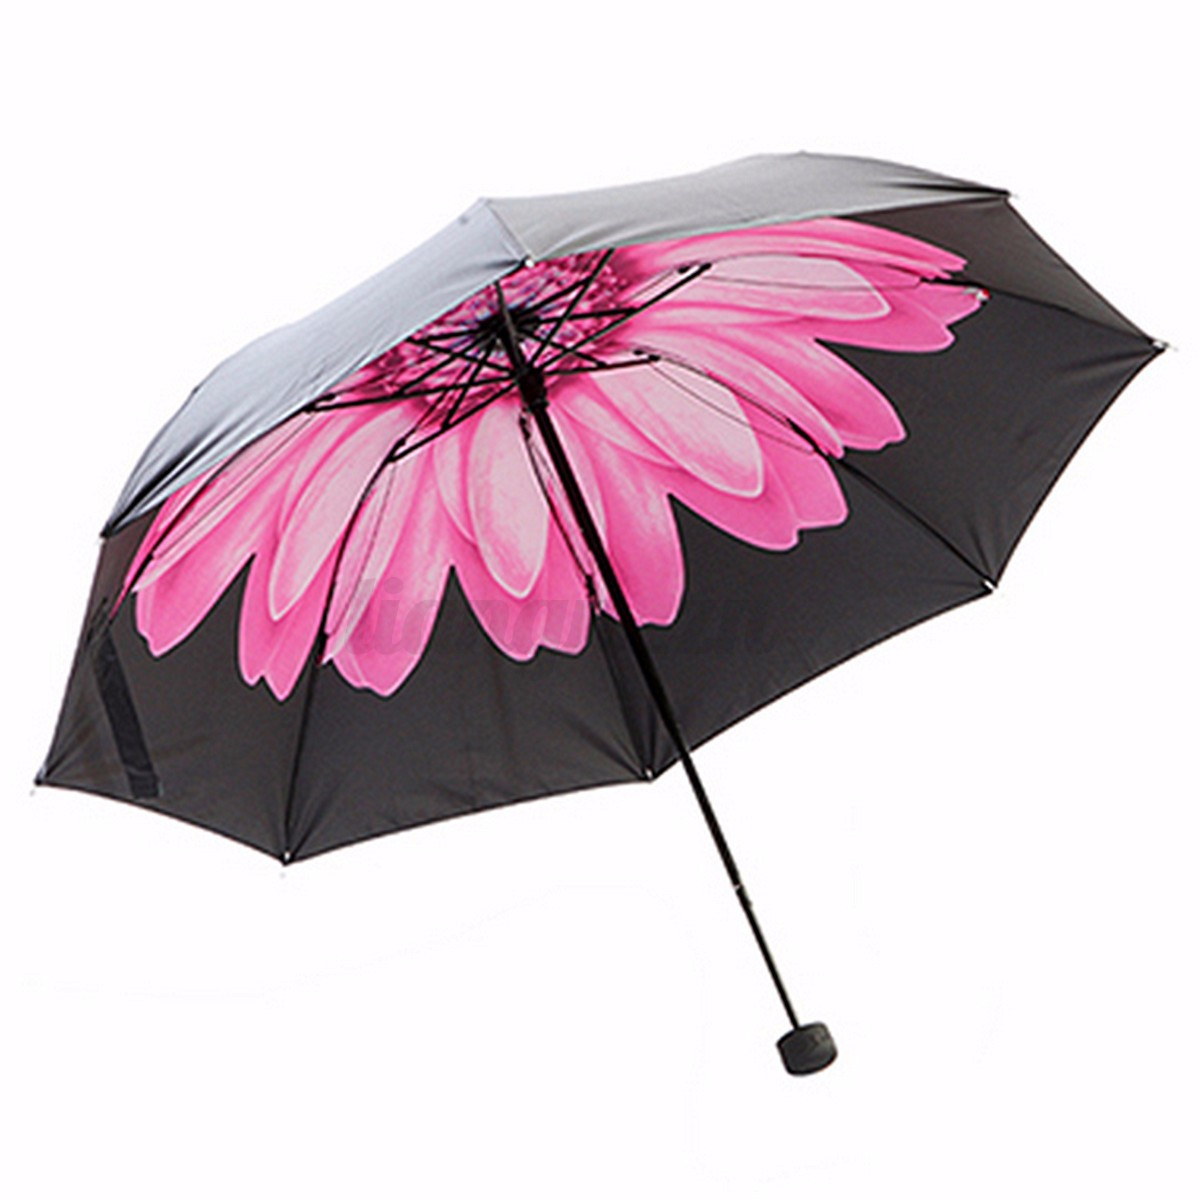 parapluies fleur noir pliant compact imprim invers anti soleil uv vent parasol ebay. Black Bedroom Furniture Sets. Home Design Ideas